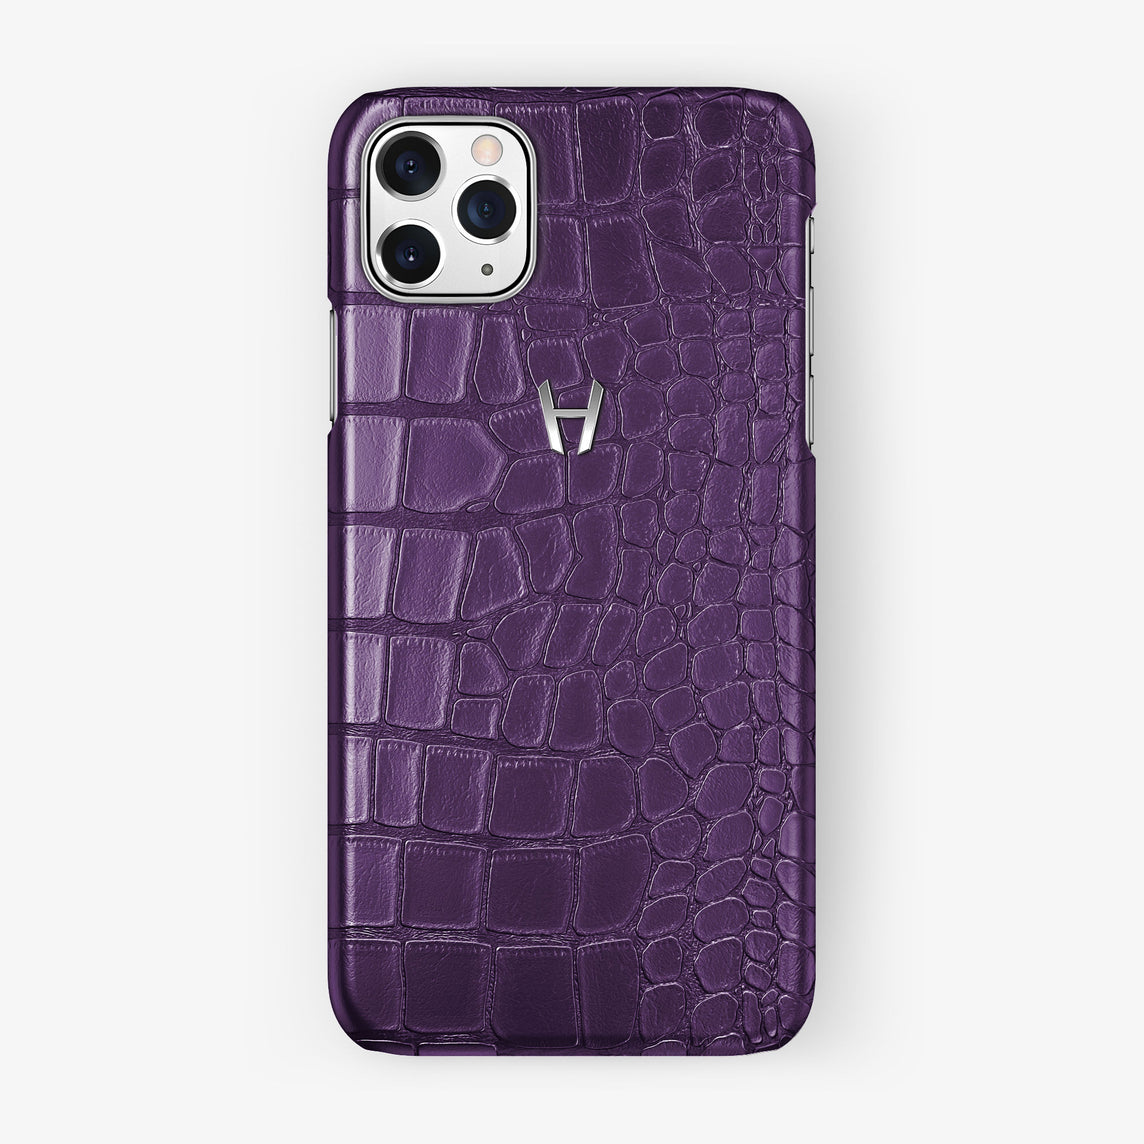 Alligator Case iPhone 11 Pro Max | Violet Purple - Stainless Steel